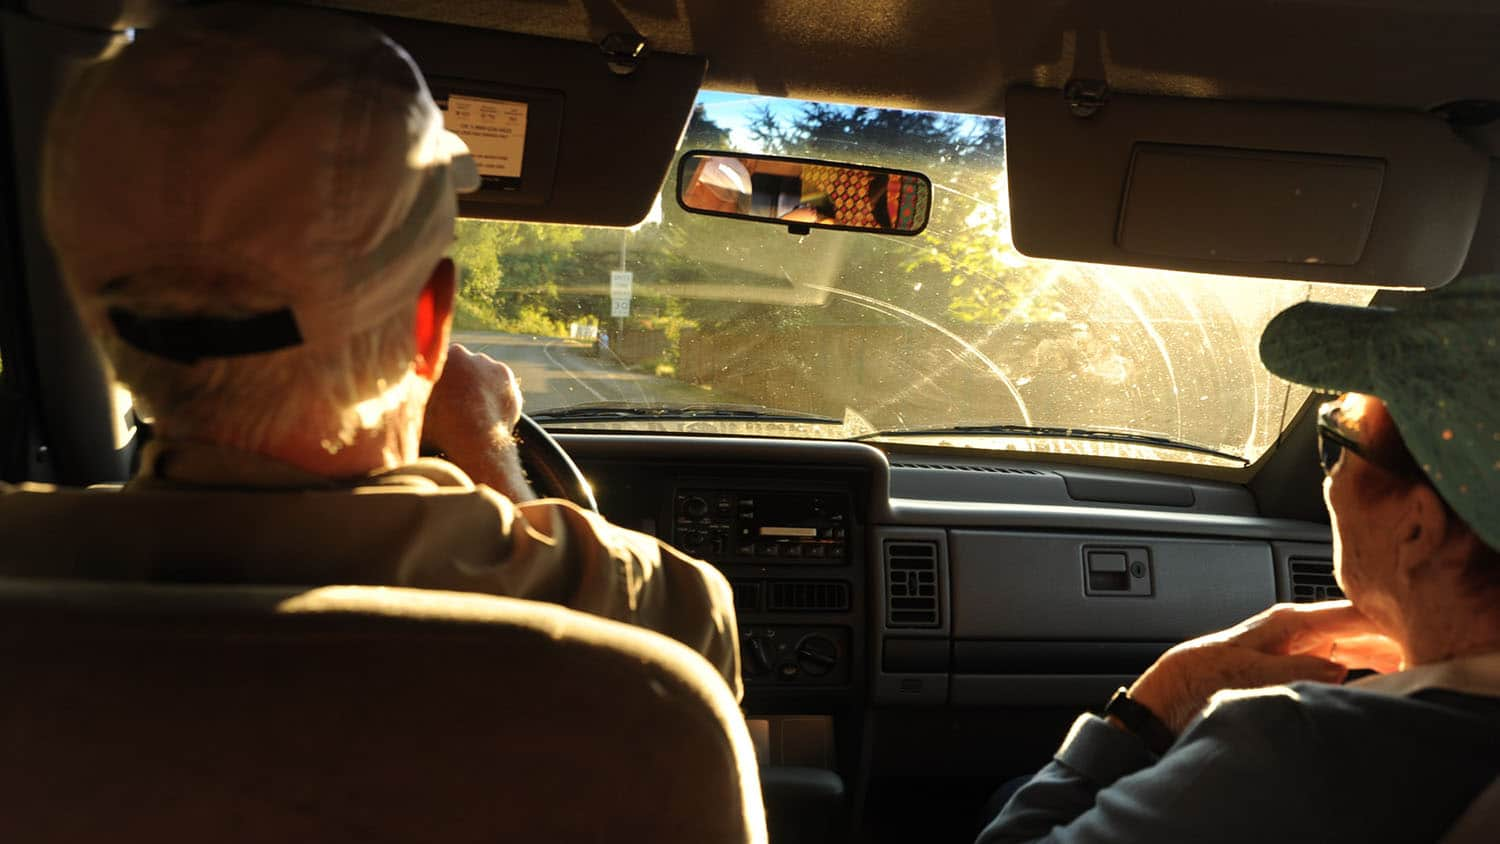 Older man and woman in front seat of a car.